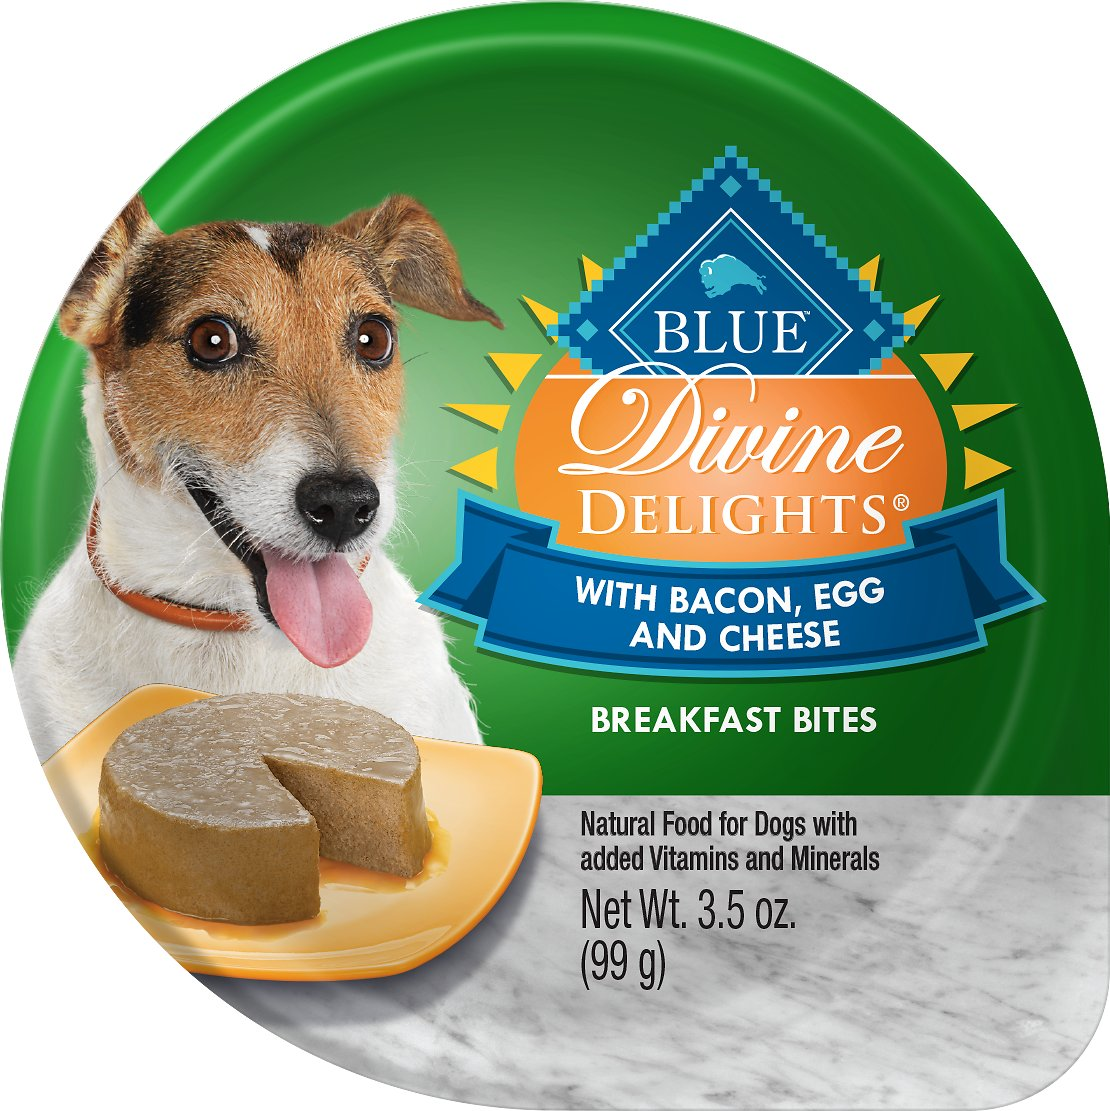 Blue Buffalo Divine Delights Bacon, Egg & Cheese Pate Dog Food Trays, 3.5-oz